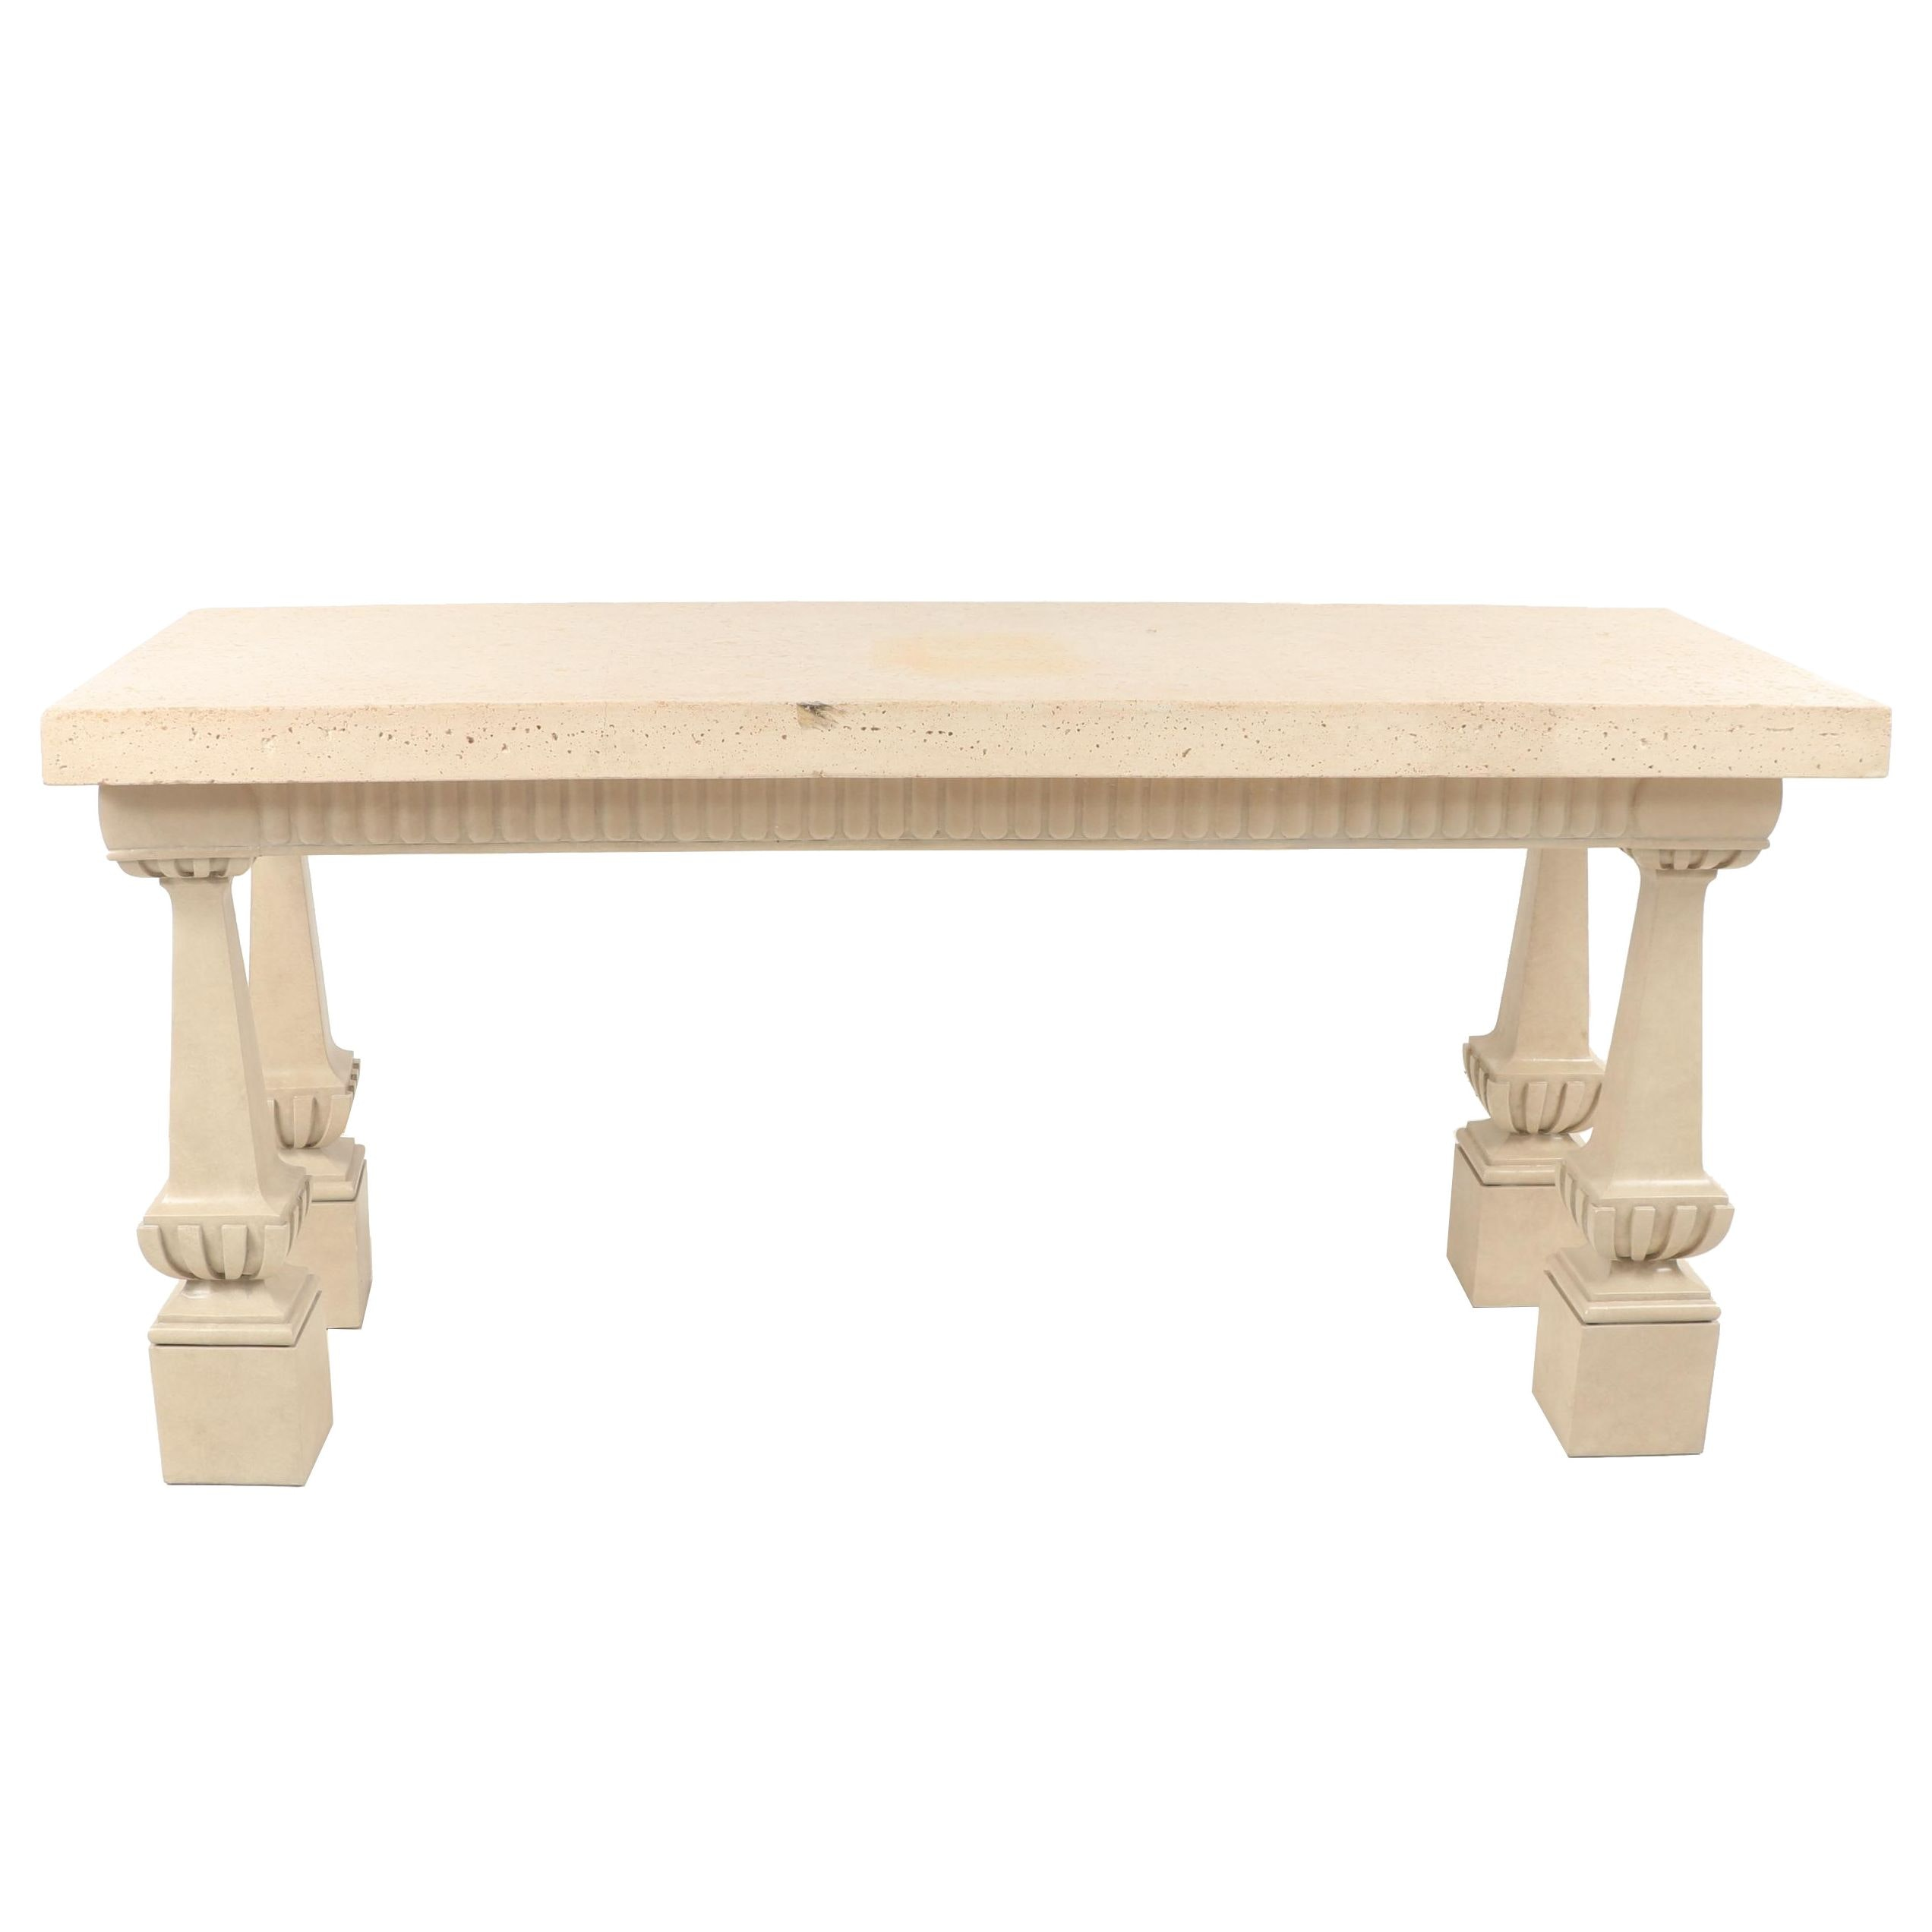 Contemporary Neoclassical Style Wooden Console Table with Concrete Top